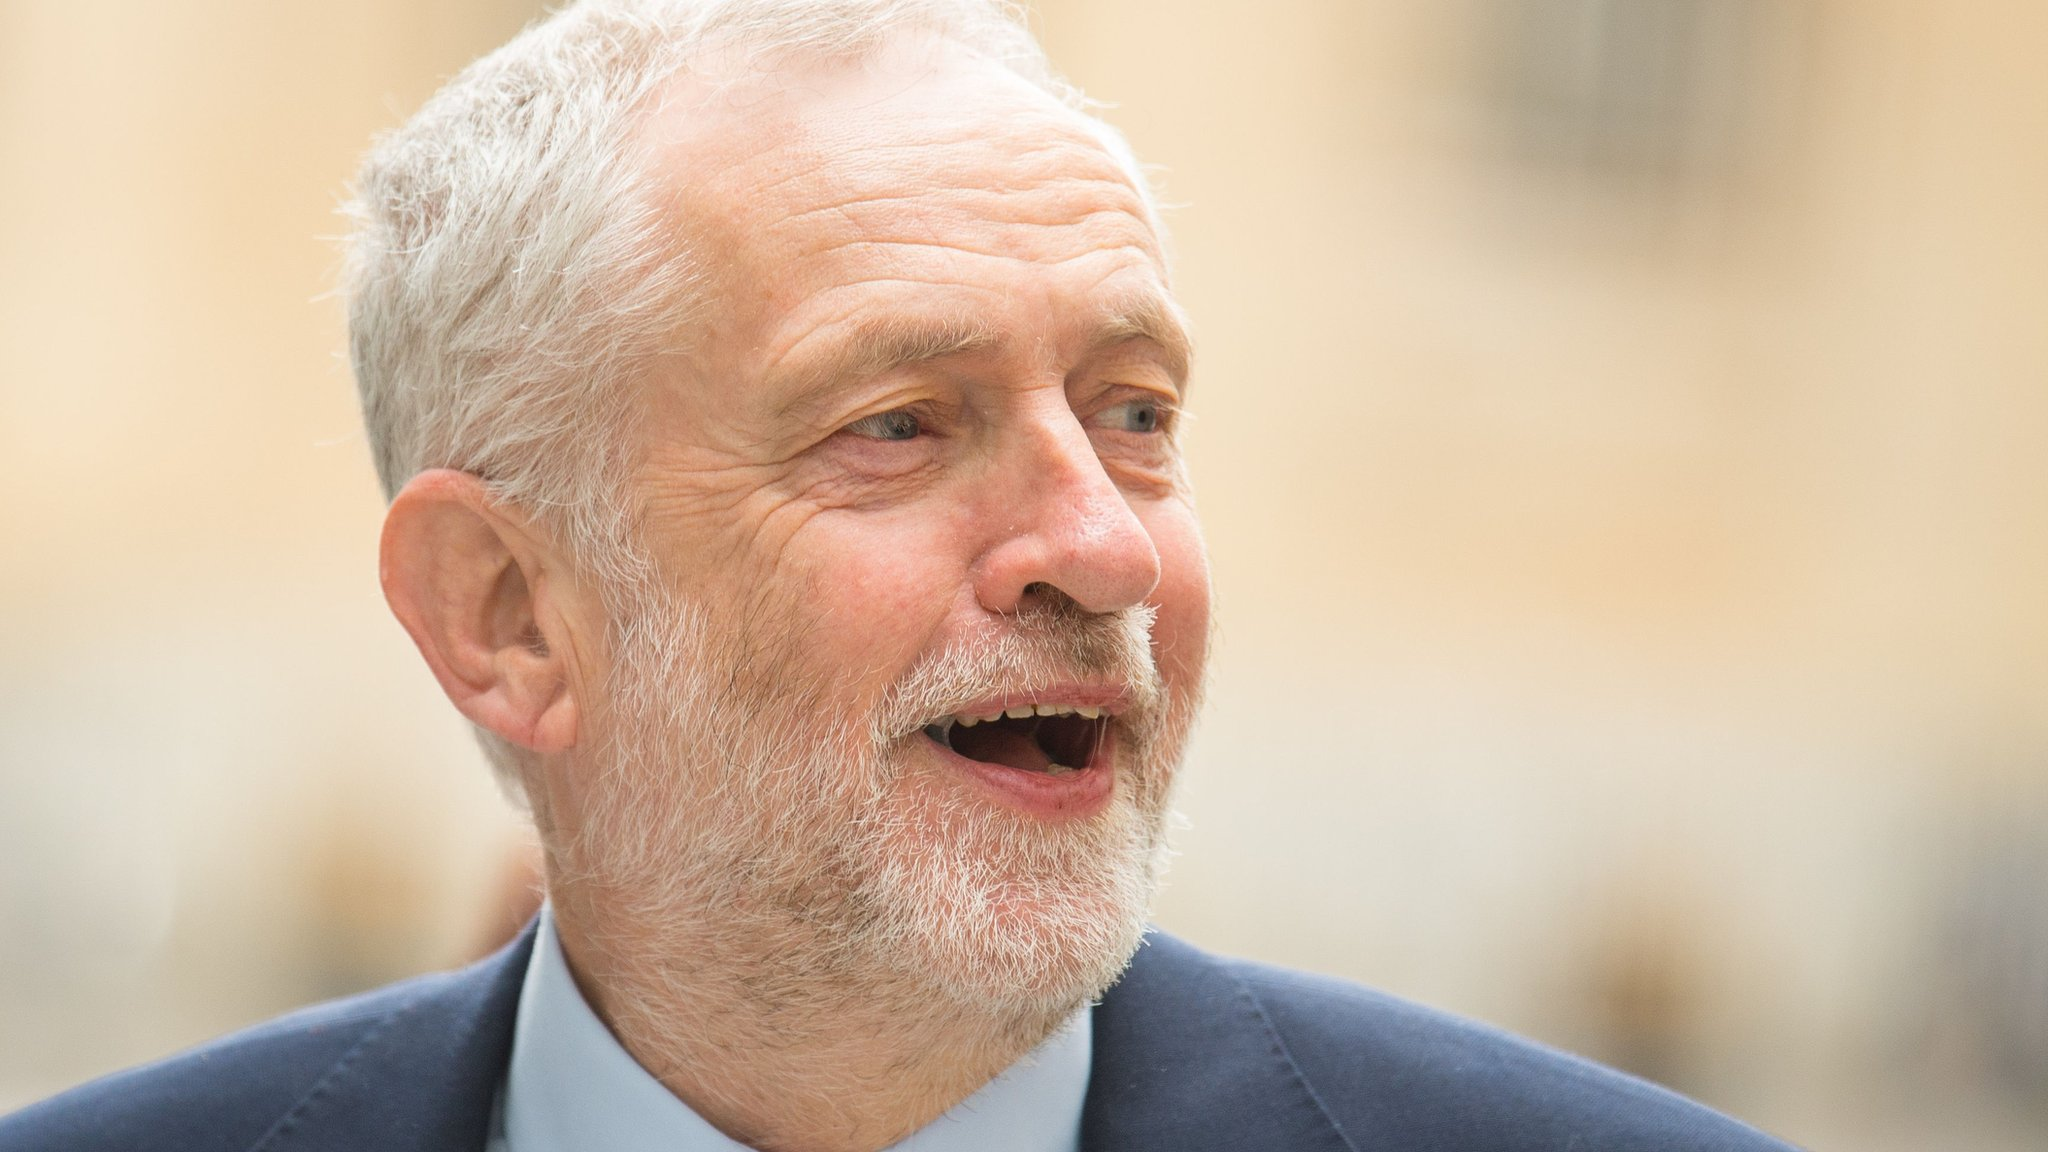 General election 2017: 'No apology' for Labour's union ties